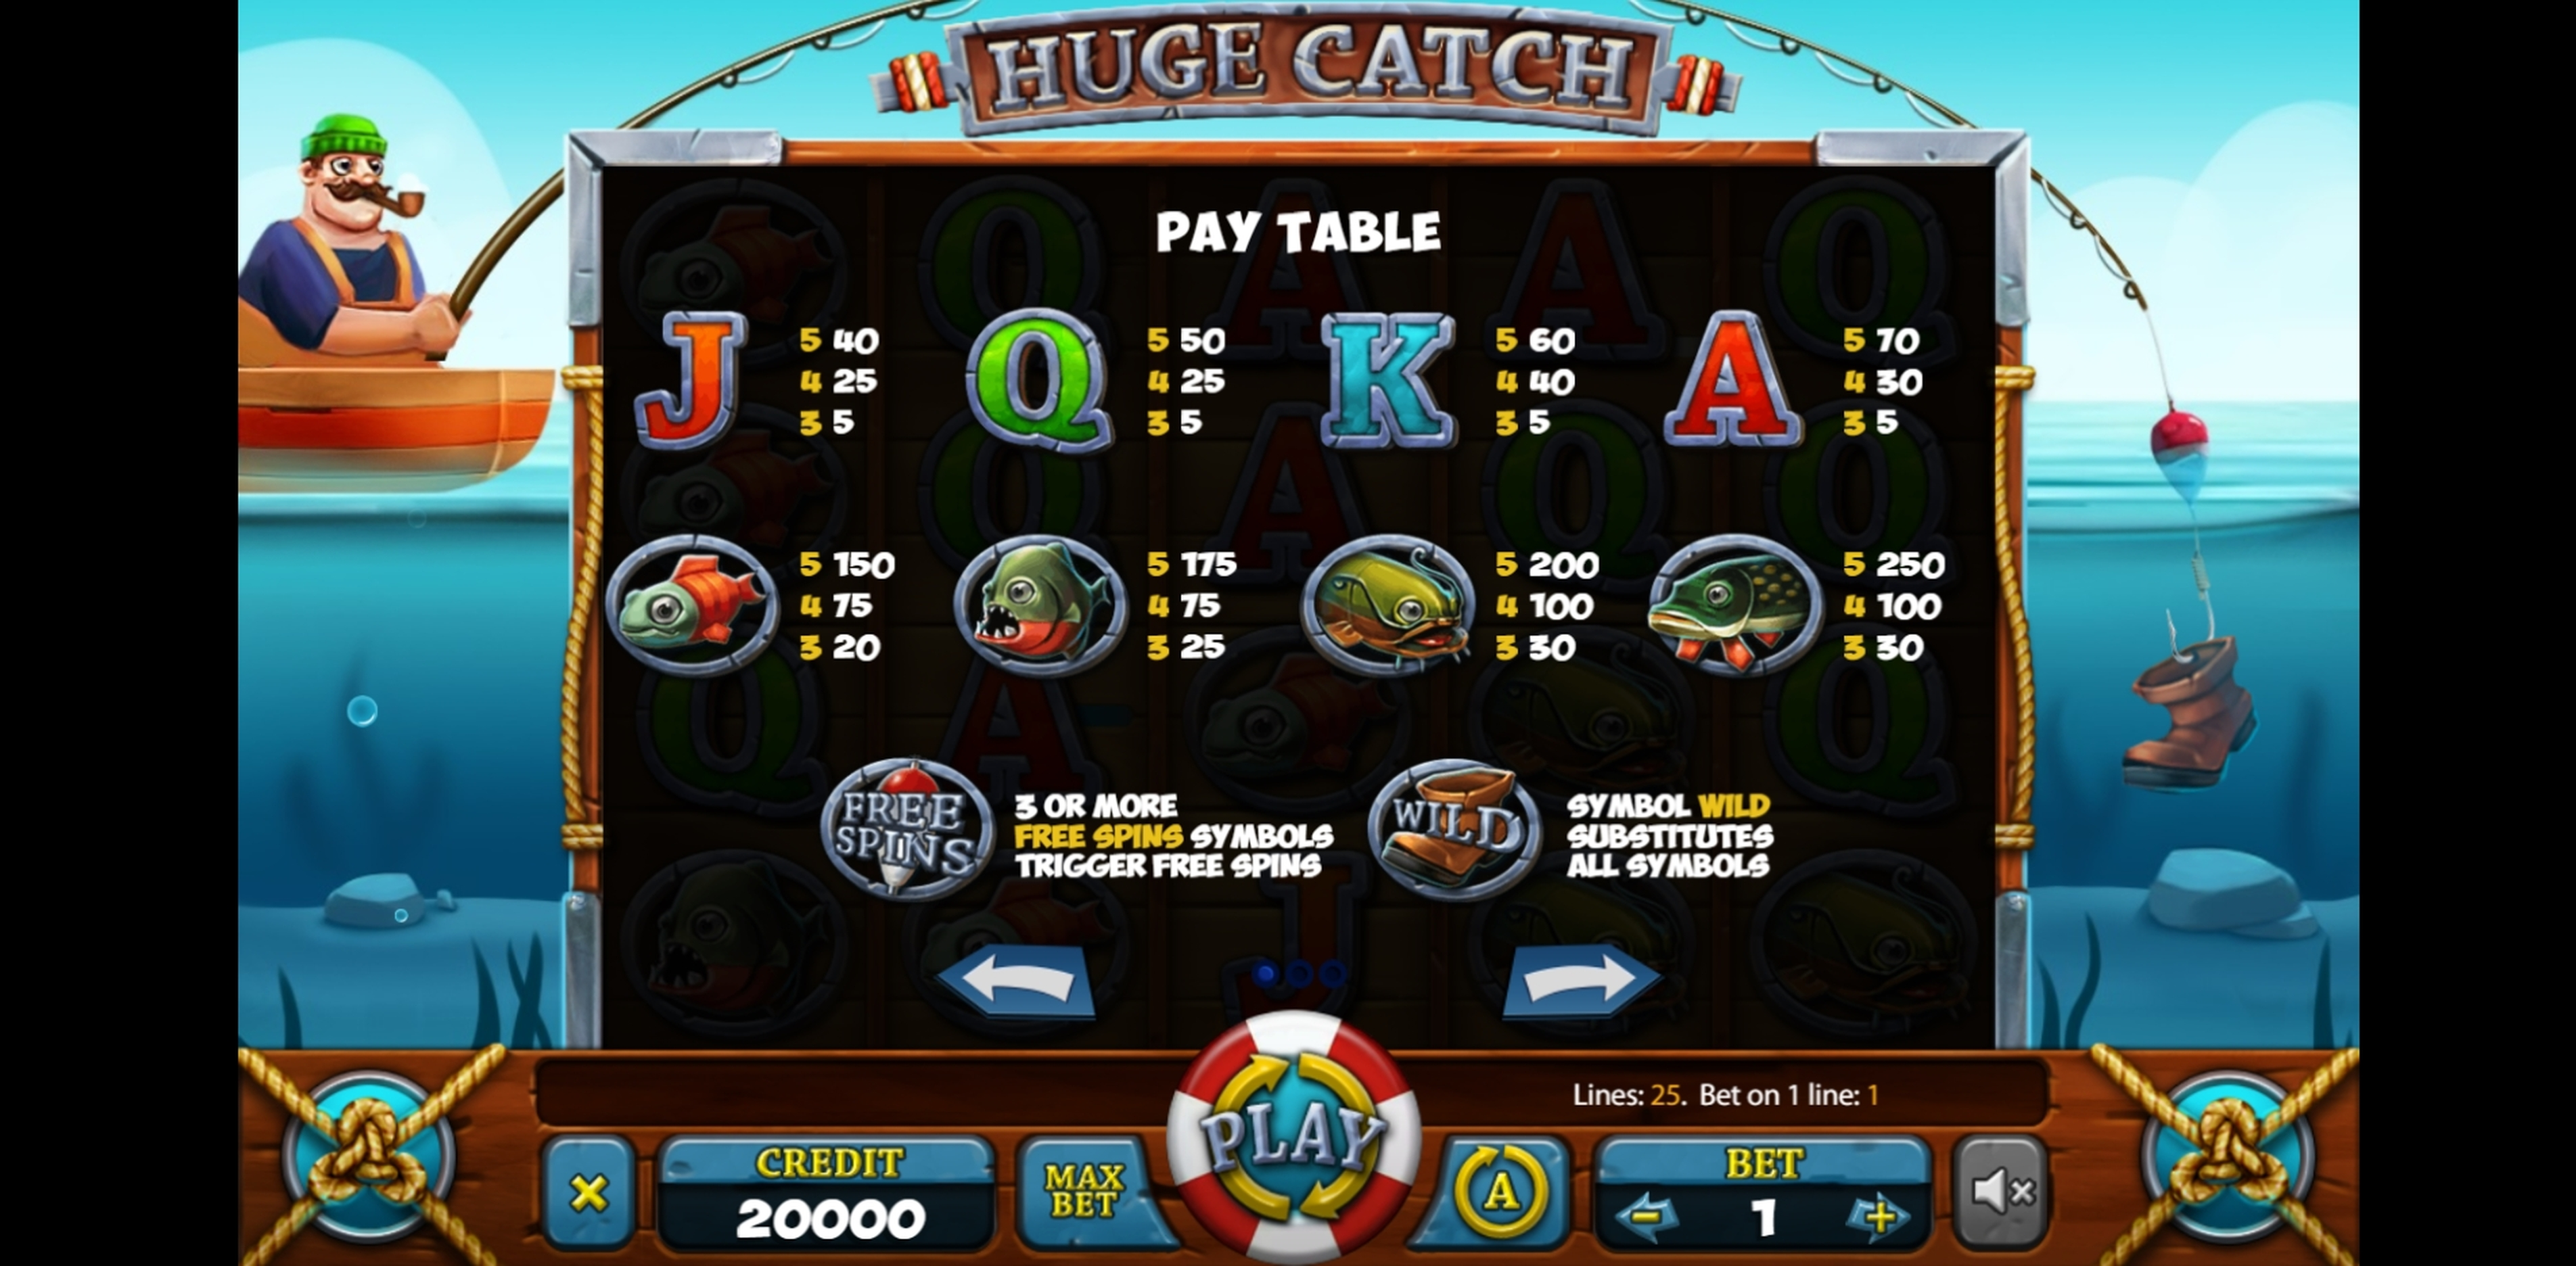 Info of Huge Catch Slot Game by X Card